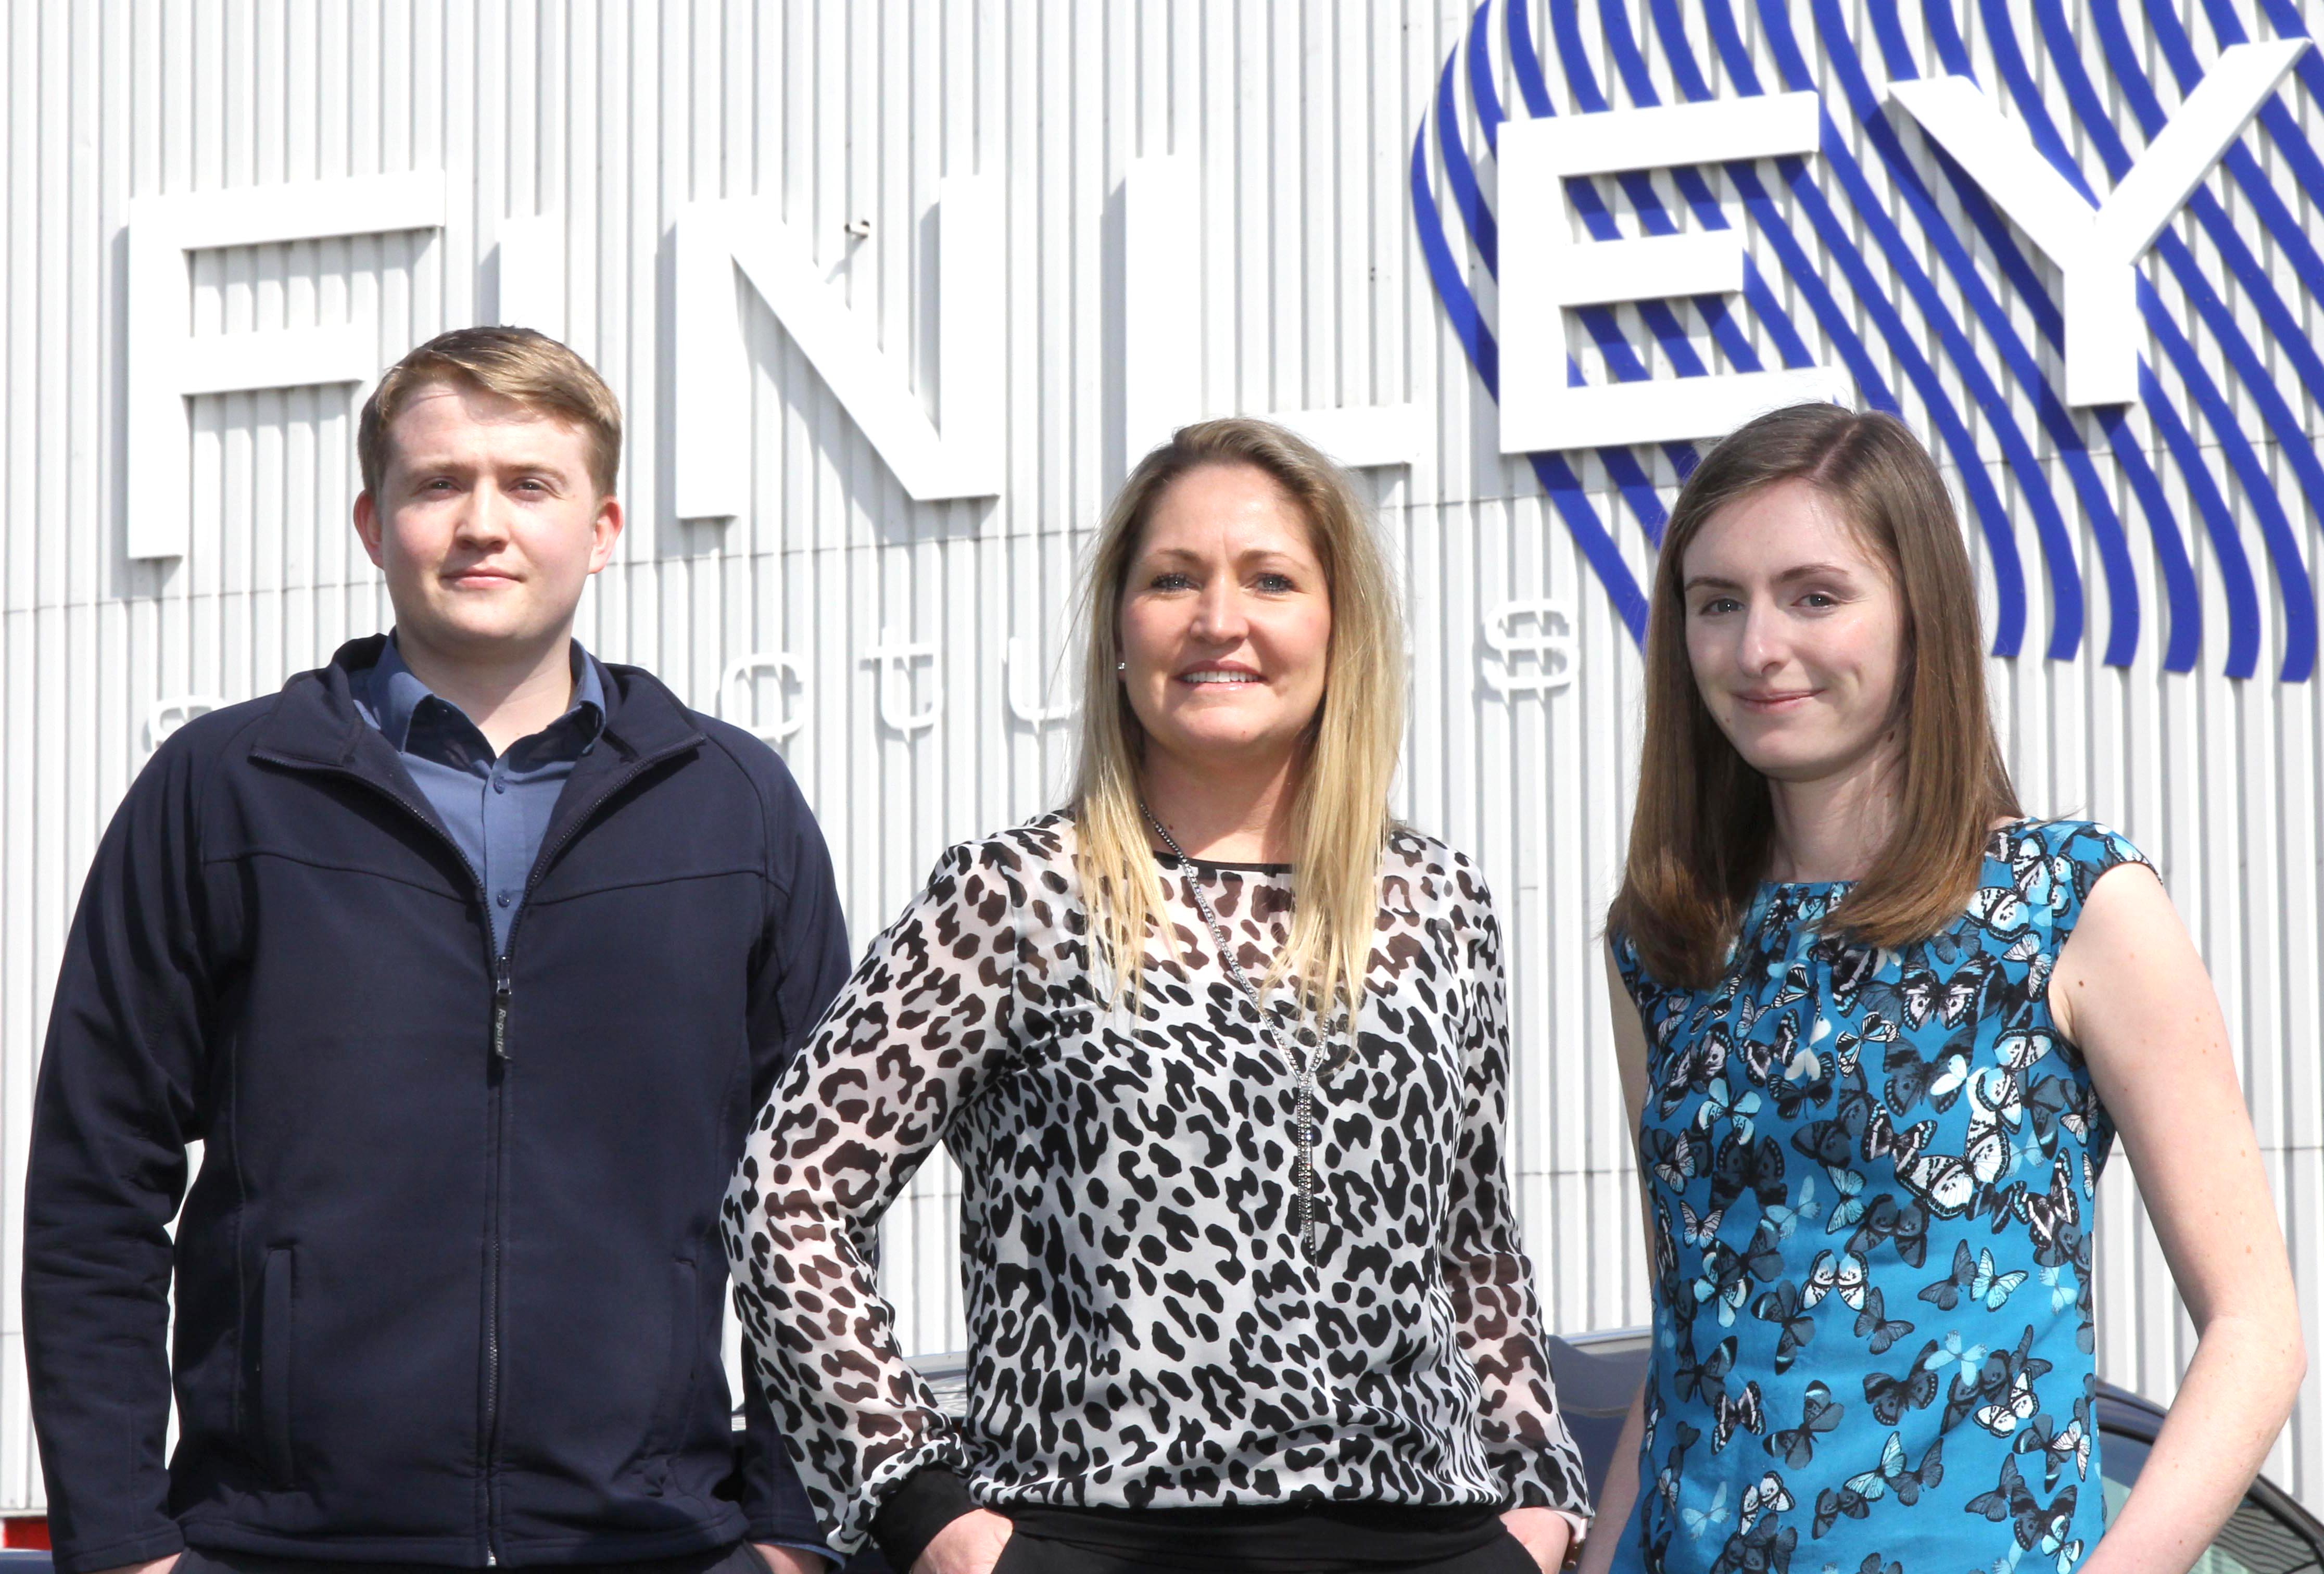 Finley Structures Employ Two Graduates